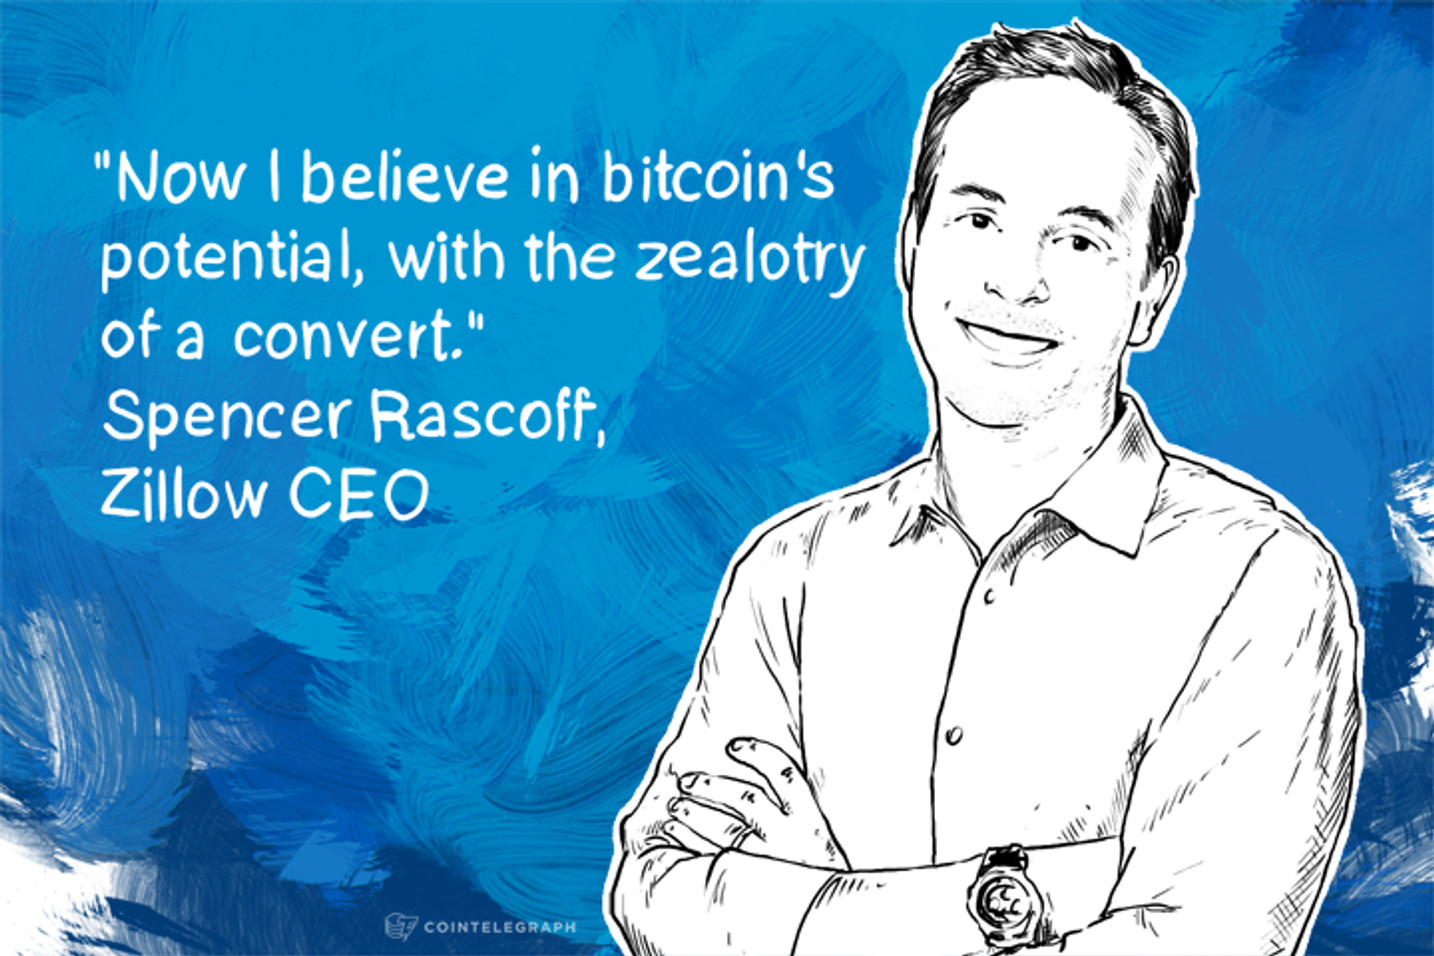 'Now I believe in bitcoin's potential, with the zealotry of a convert'  Spencer Rascoff, Zillow CEO